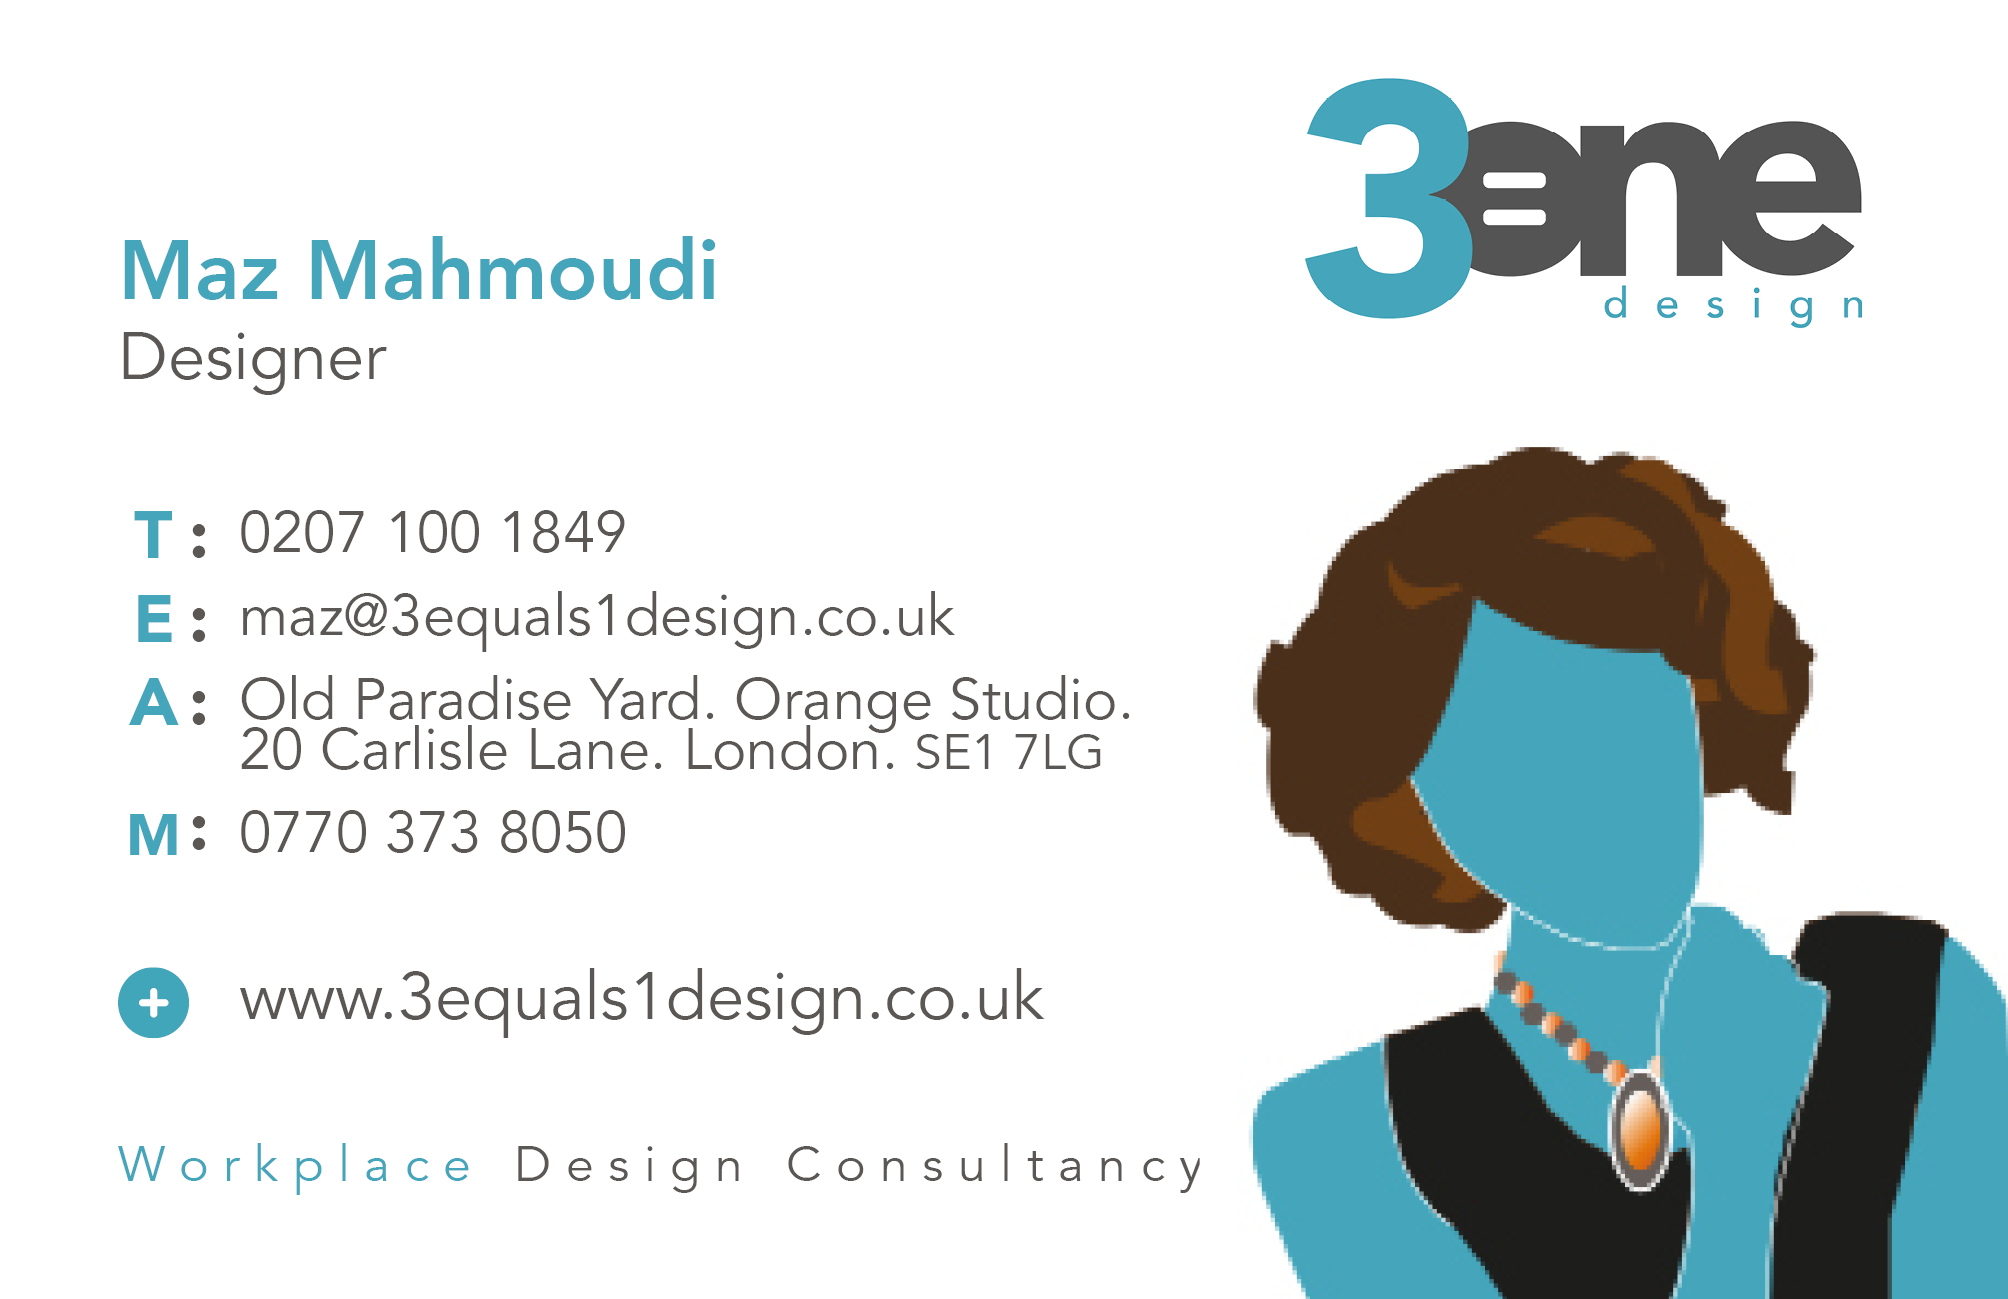 Get in touch with Maz - Maz is a walking, talking A-Z of commercial product. Get in touch if you need help with your latest project!maz@3equals1design.co.uk